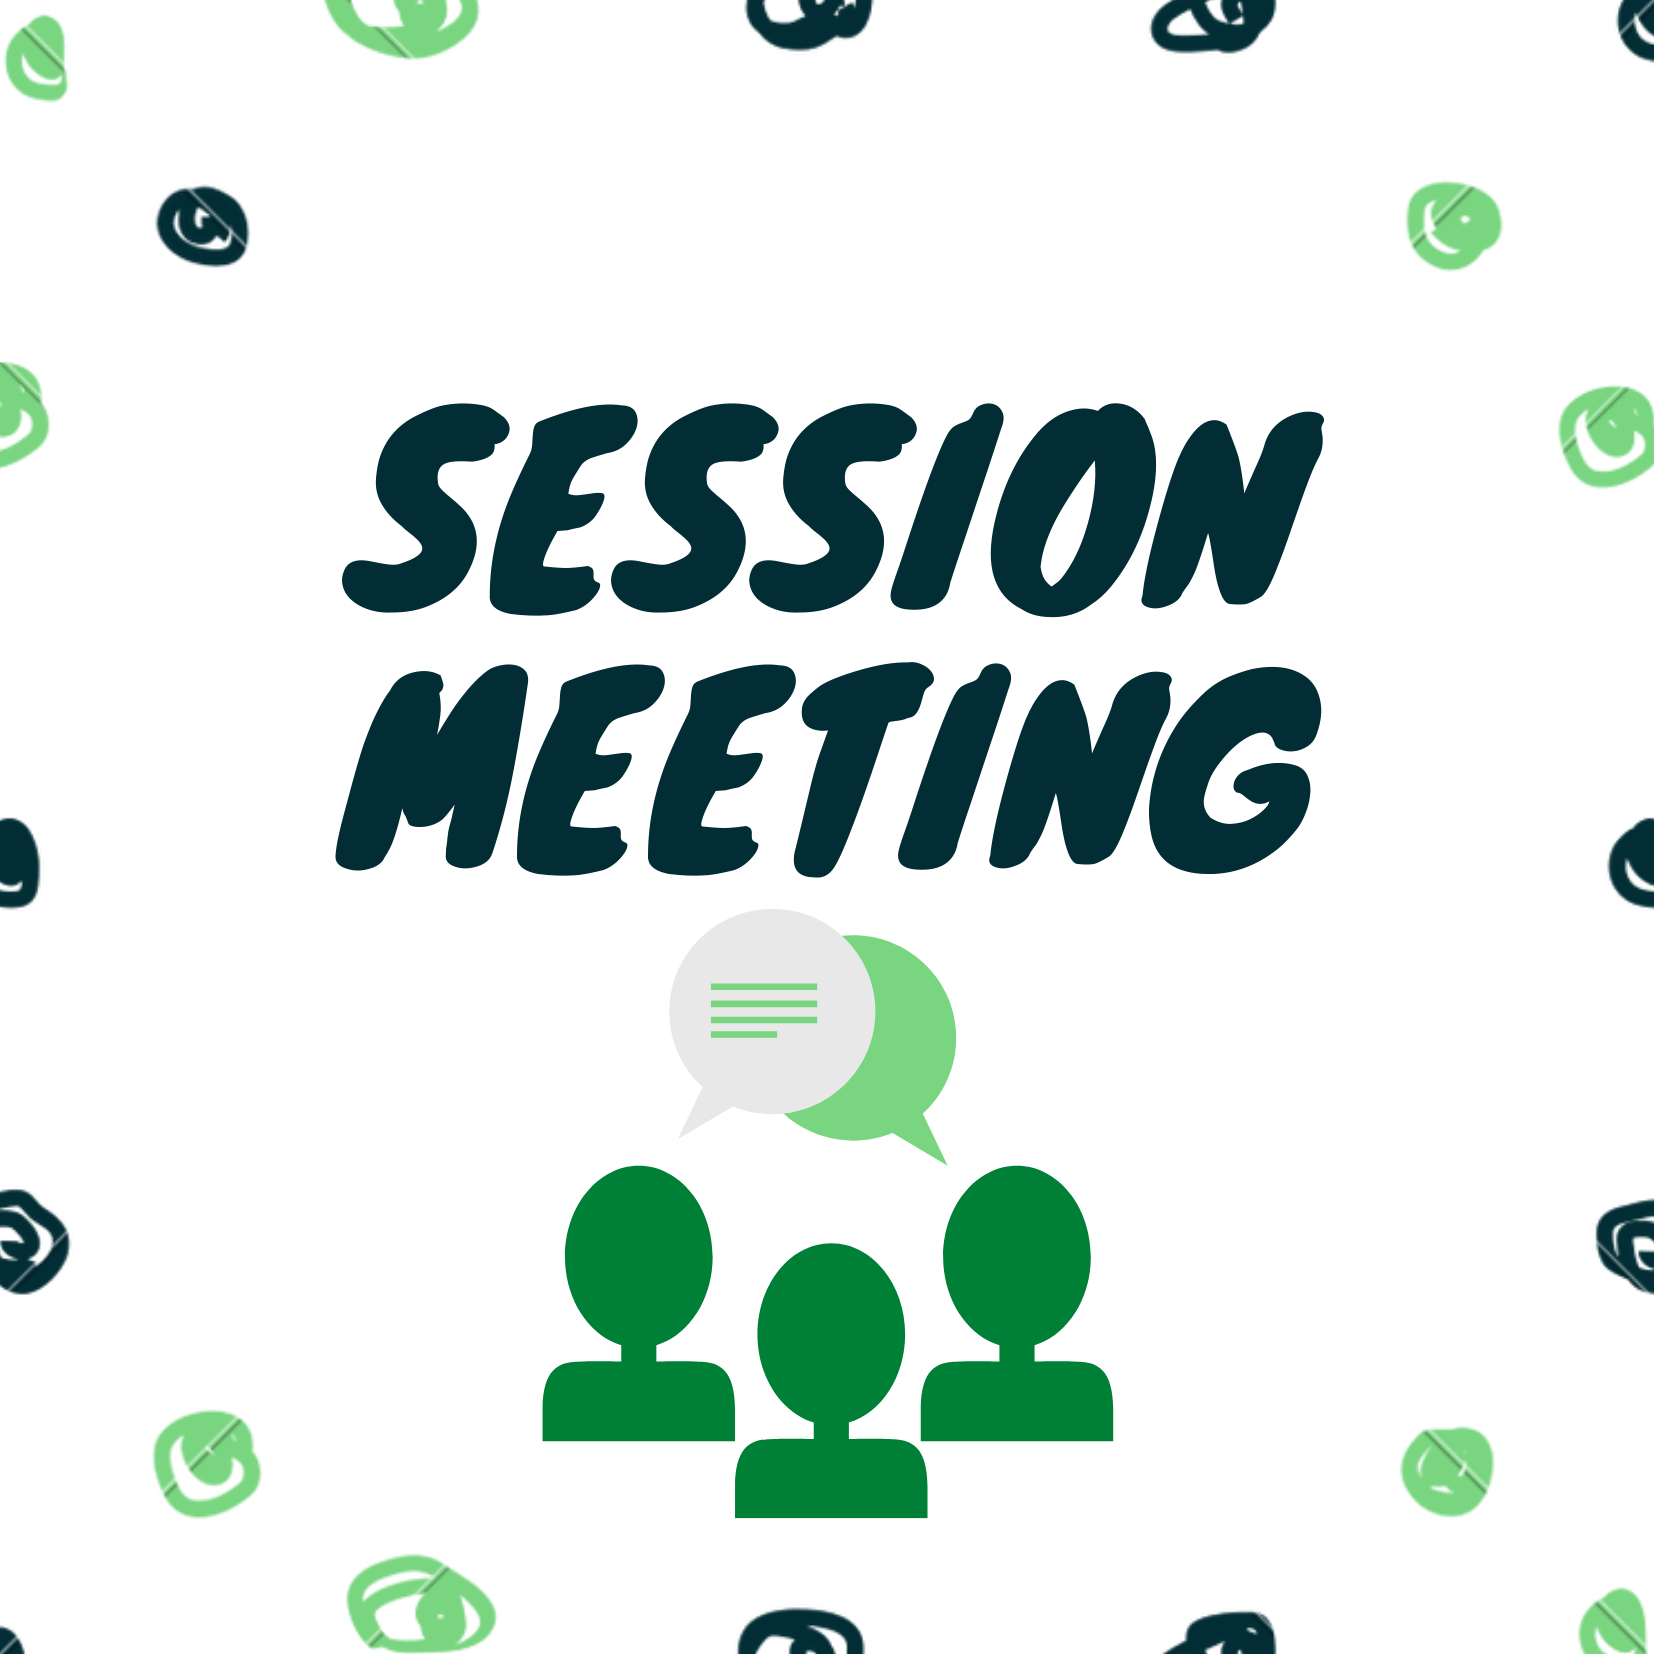 Session Meeting Icon image